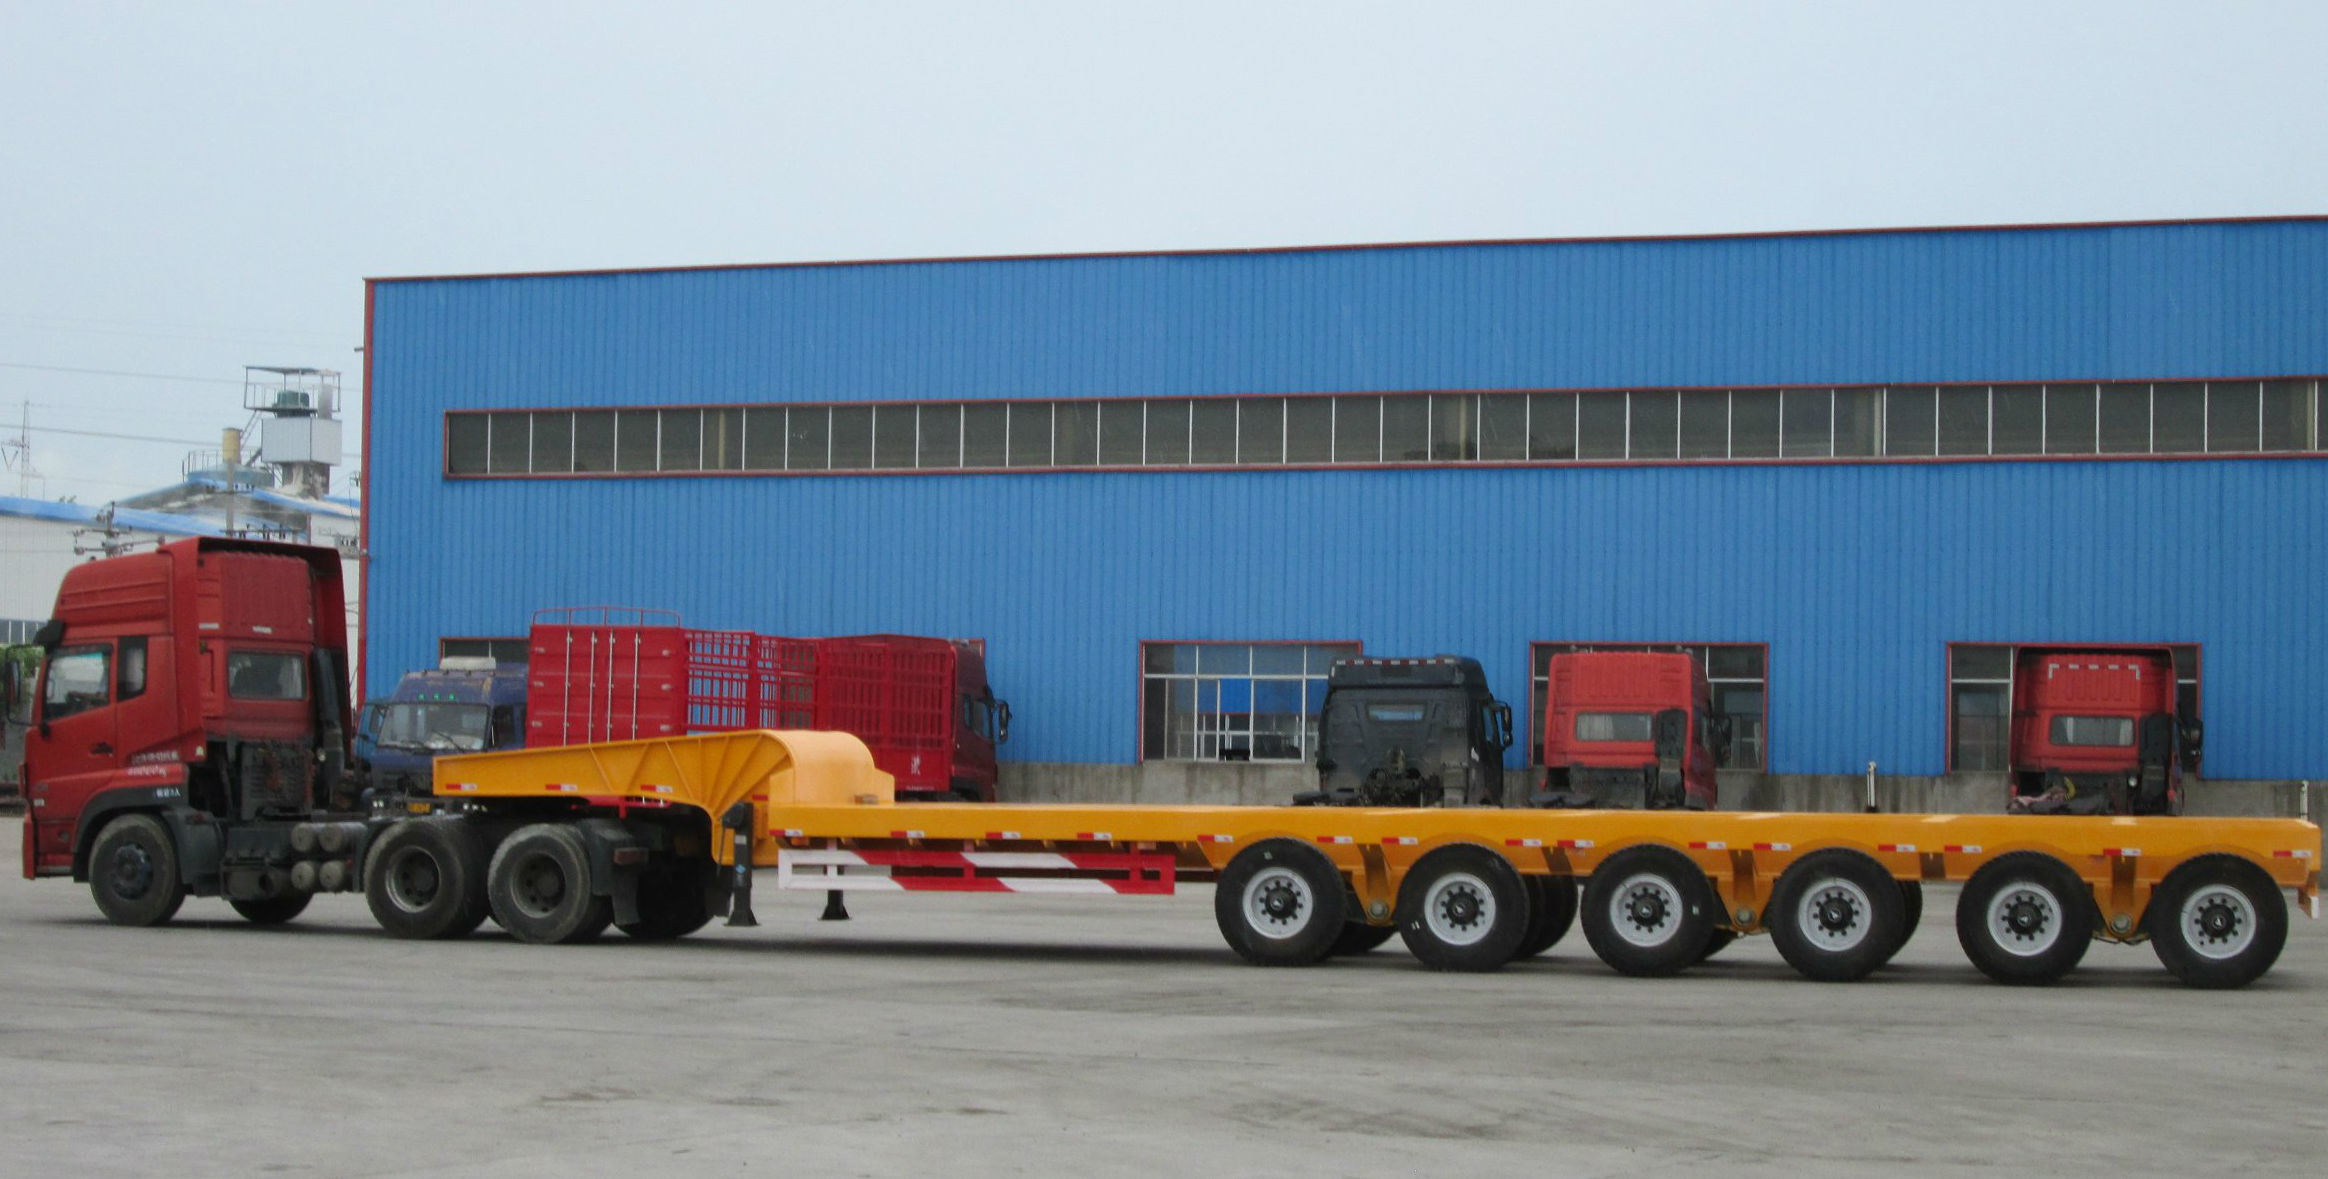 3 Axles Super Low Bed Flatbed Vehicle Semitrailer